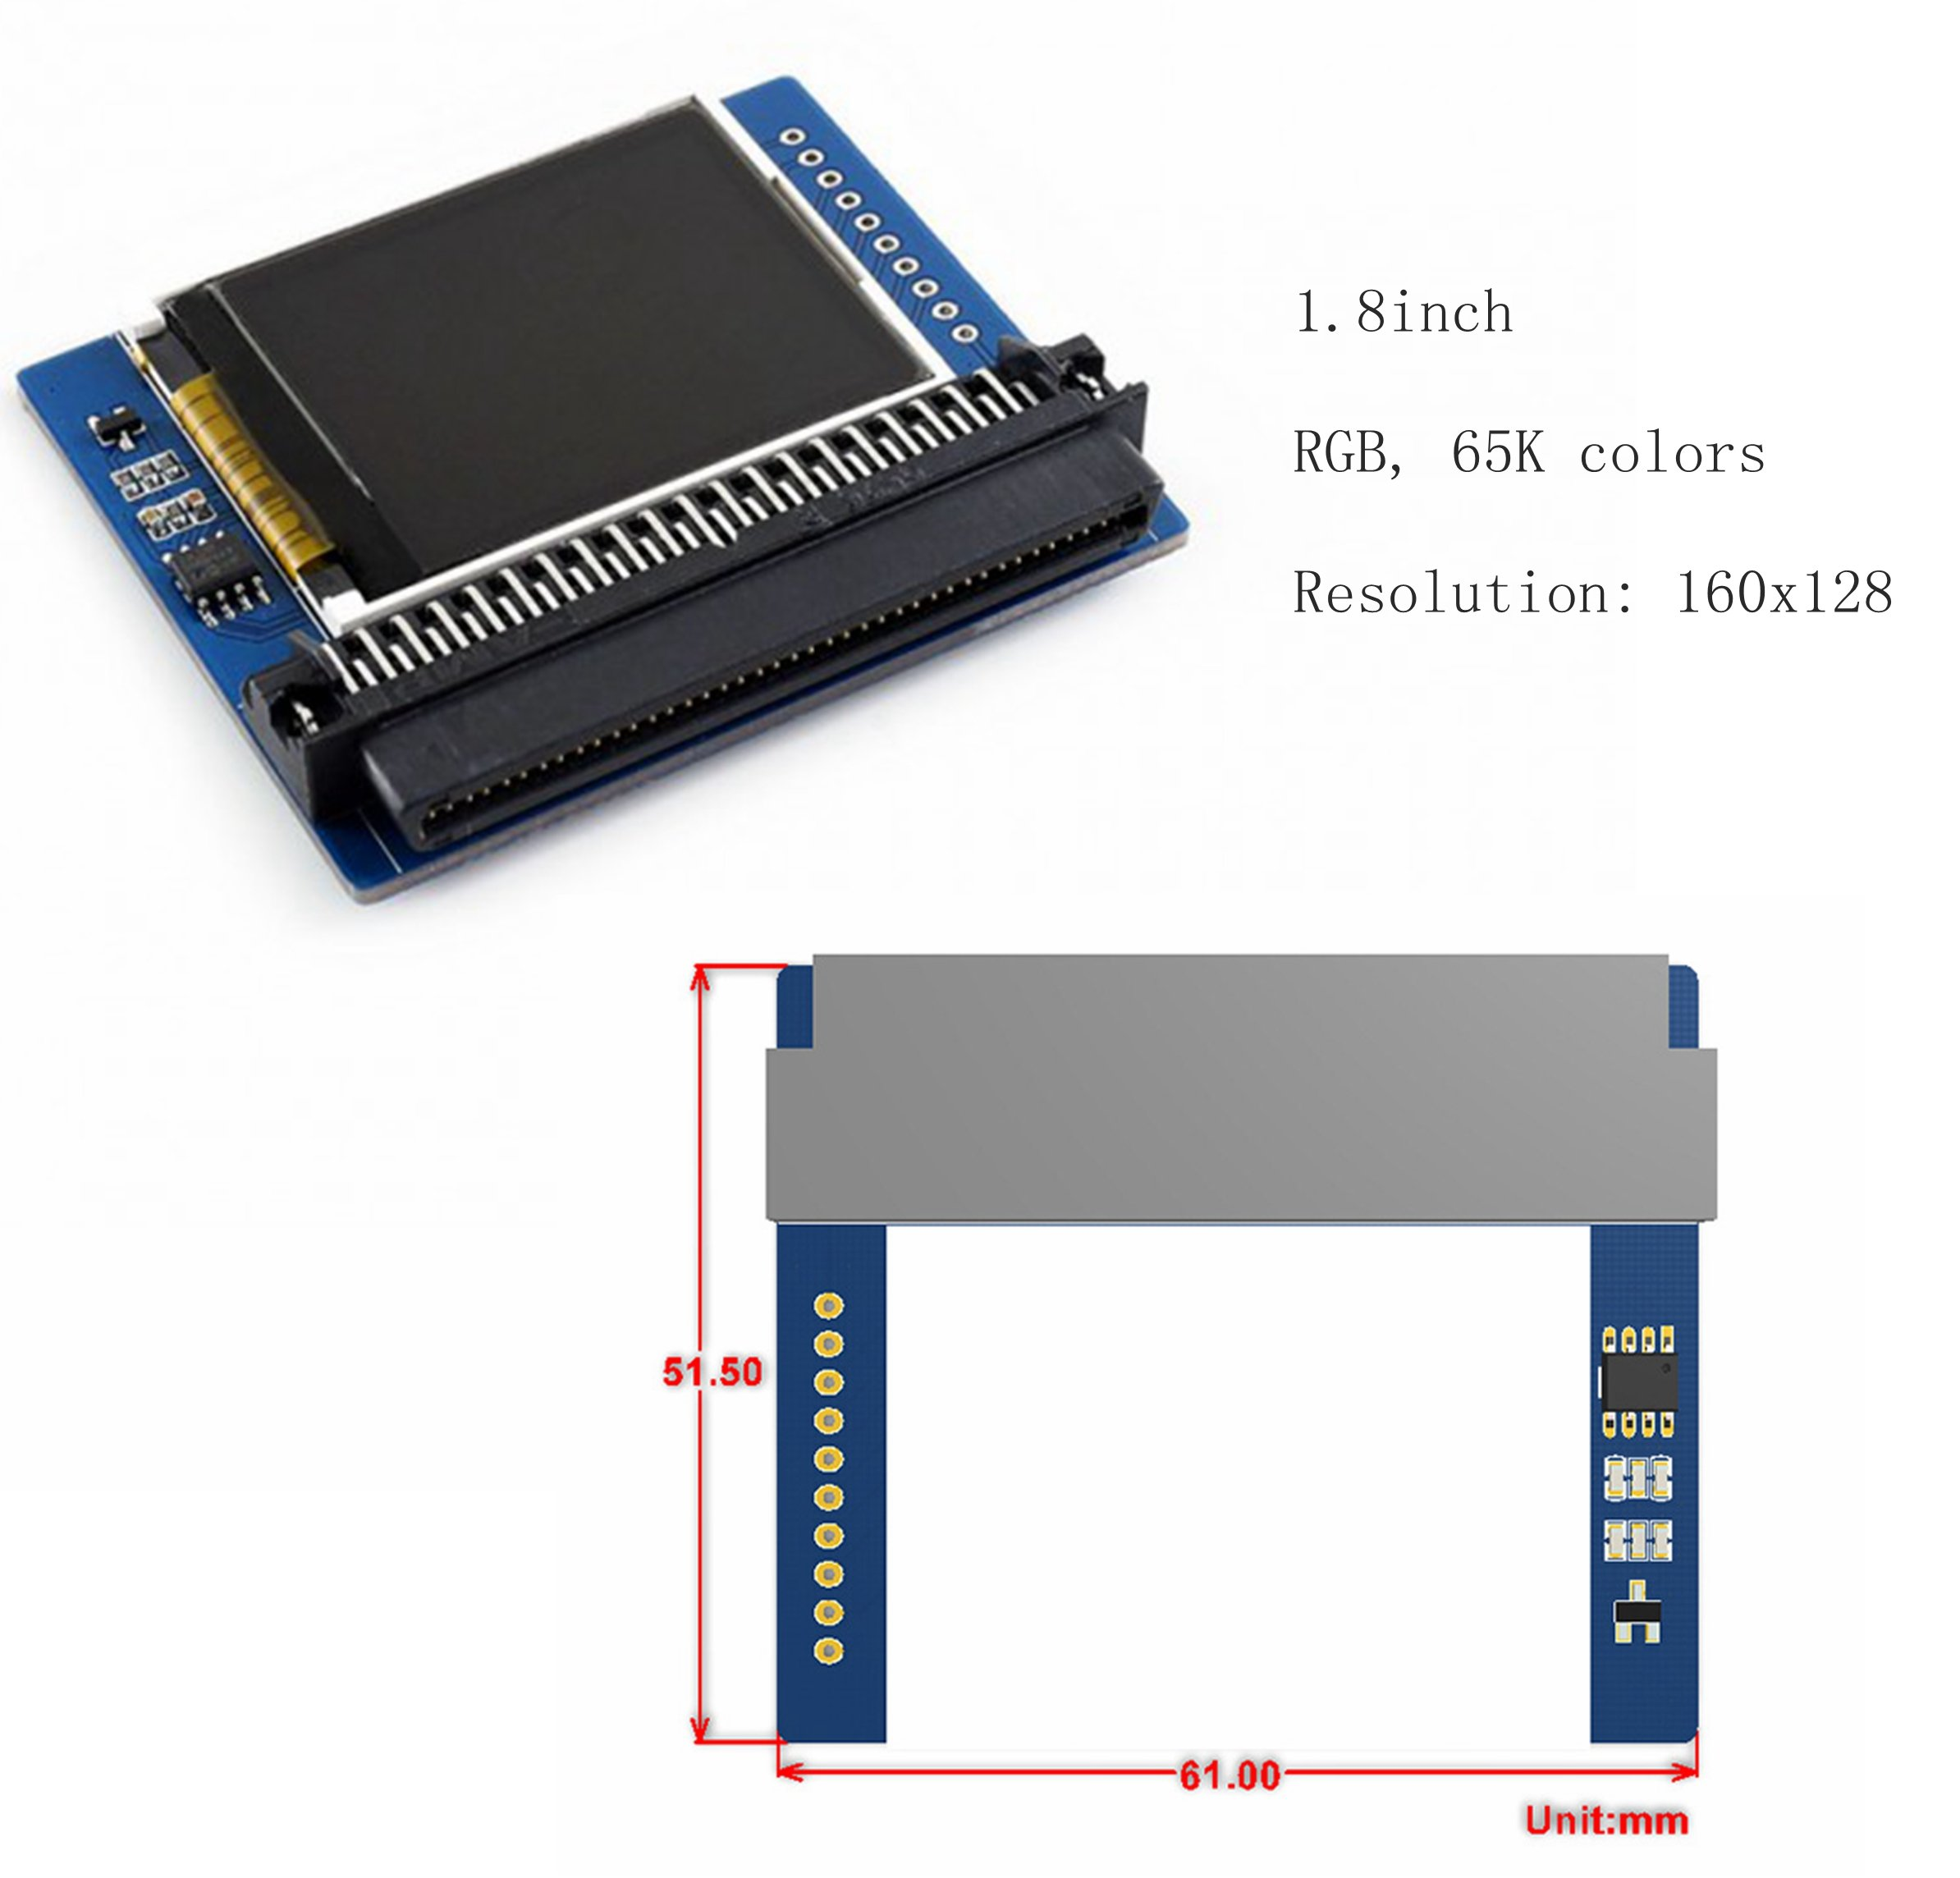 CQRobot 1.8inch 160x128 65K Colors Colorful Display Module for the BBC Micro:bit, SPI Interface, Reserved Solder Pads for Control Interface to Connect with Arduino/Nucleo Boards.